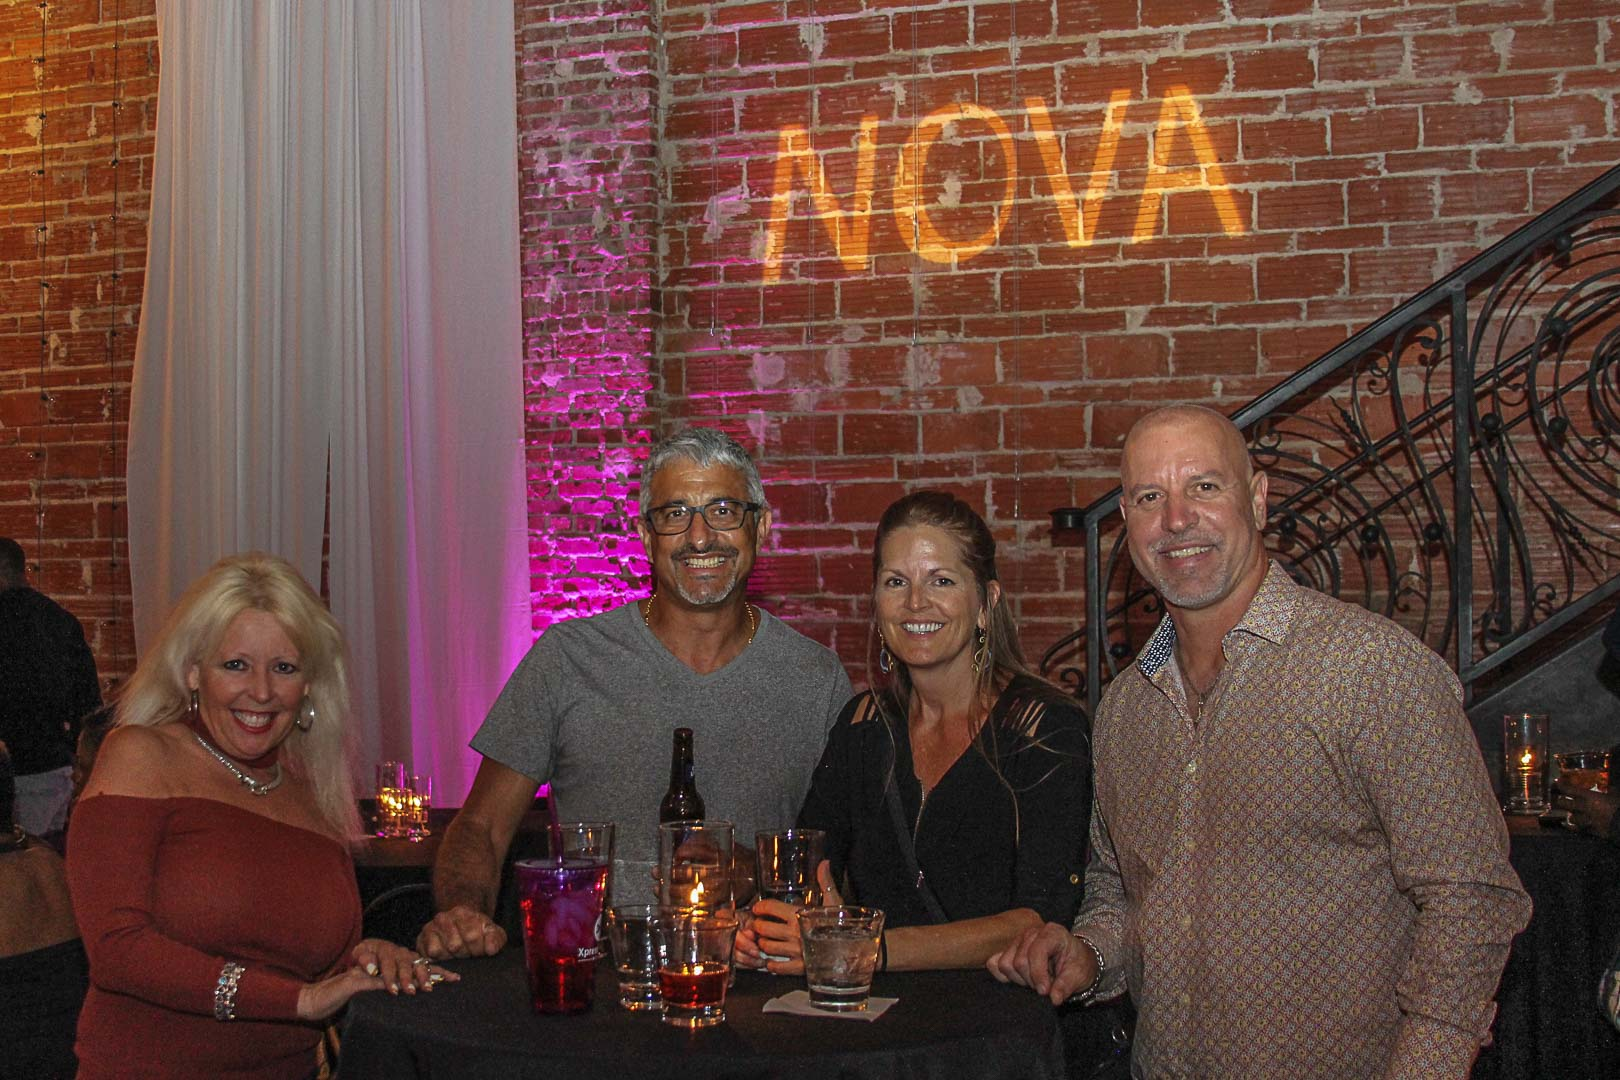 A Laughter Filled NOVA Comedy Night at historic downtown St. Pete venue NOVA 535